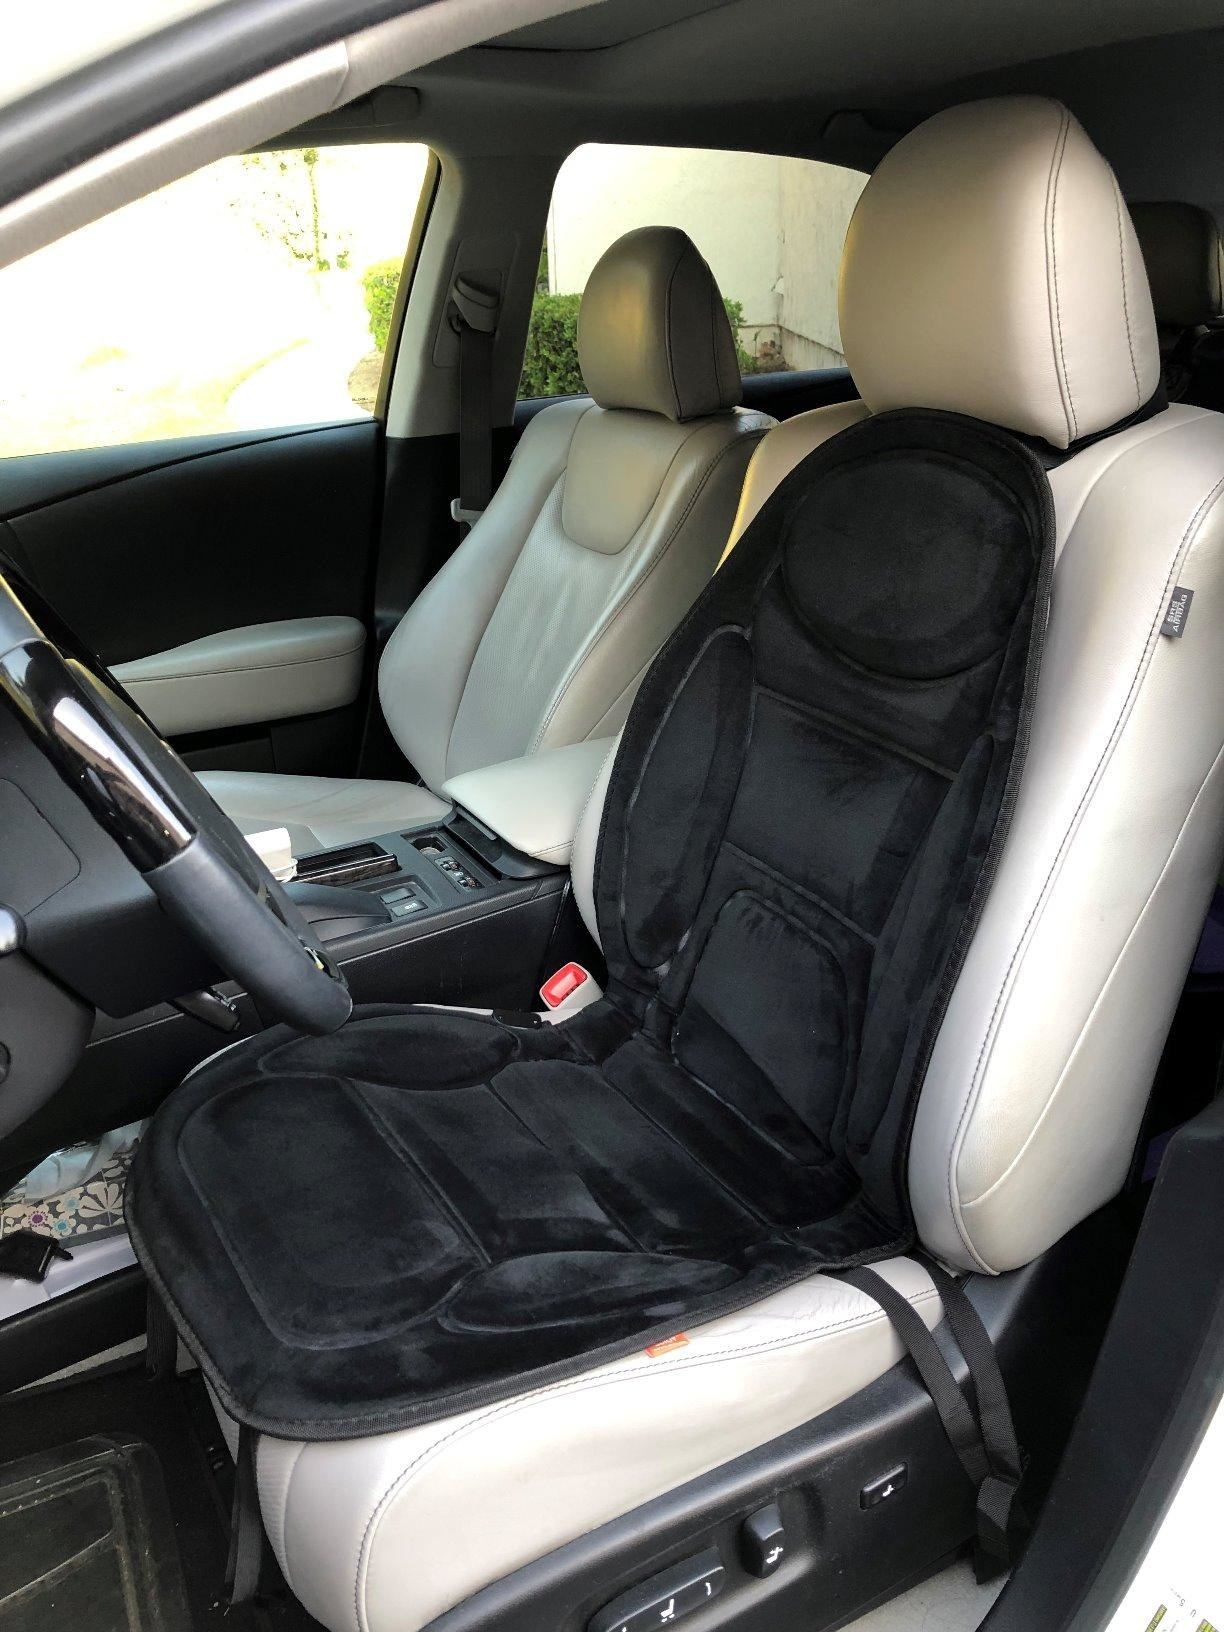 The black velvety cushion strapped to a car's driver seat